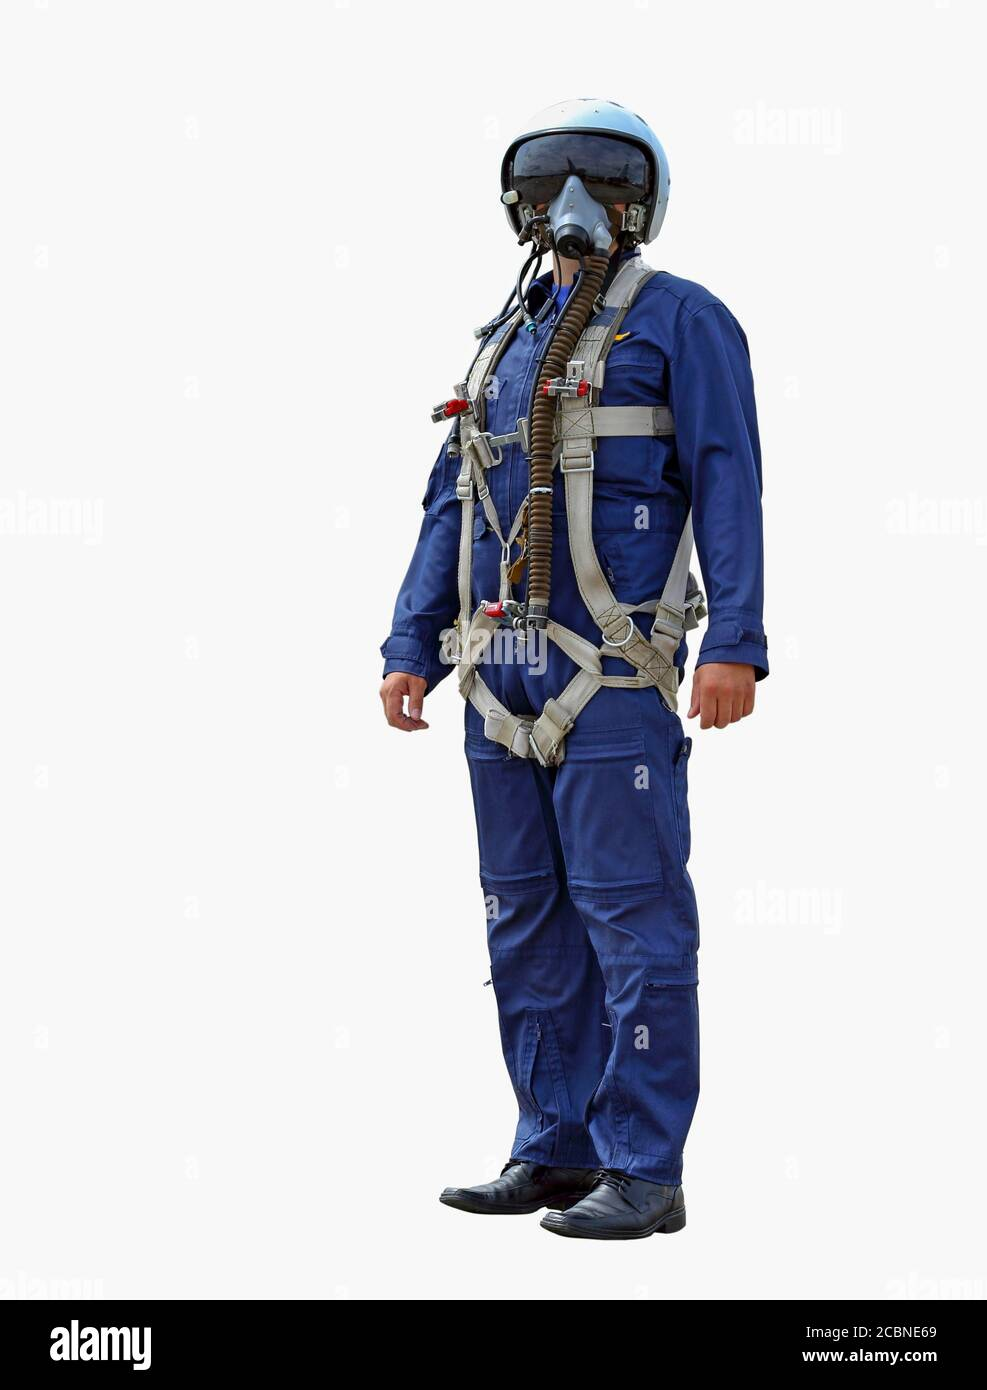 man dressed as a pilot on a white background Stock Photo